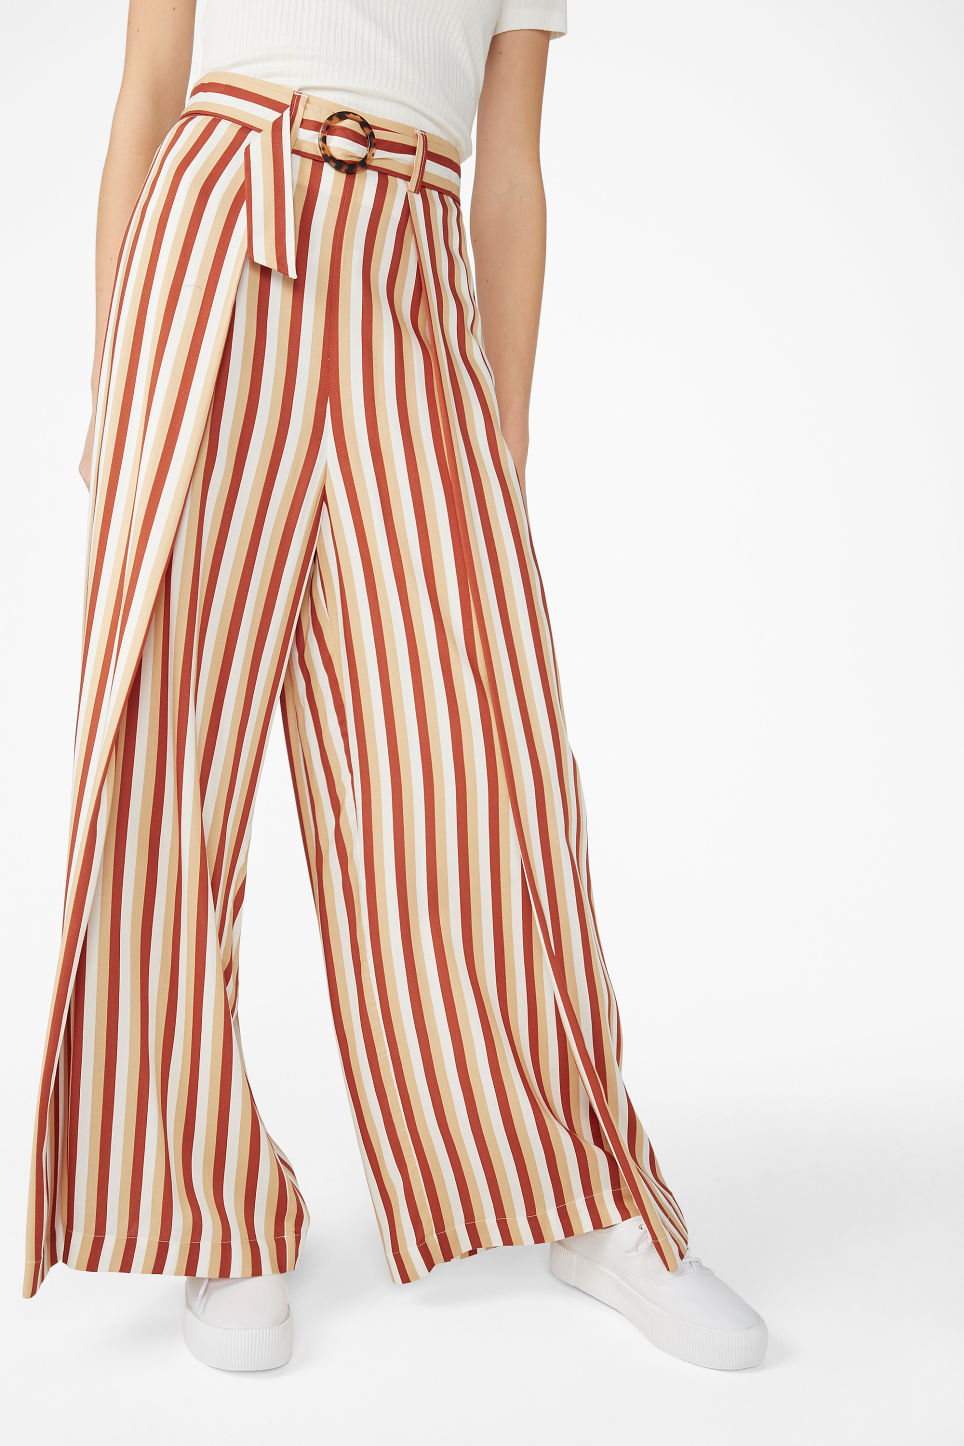 Model side image of Monki wrap style trousers in orange